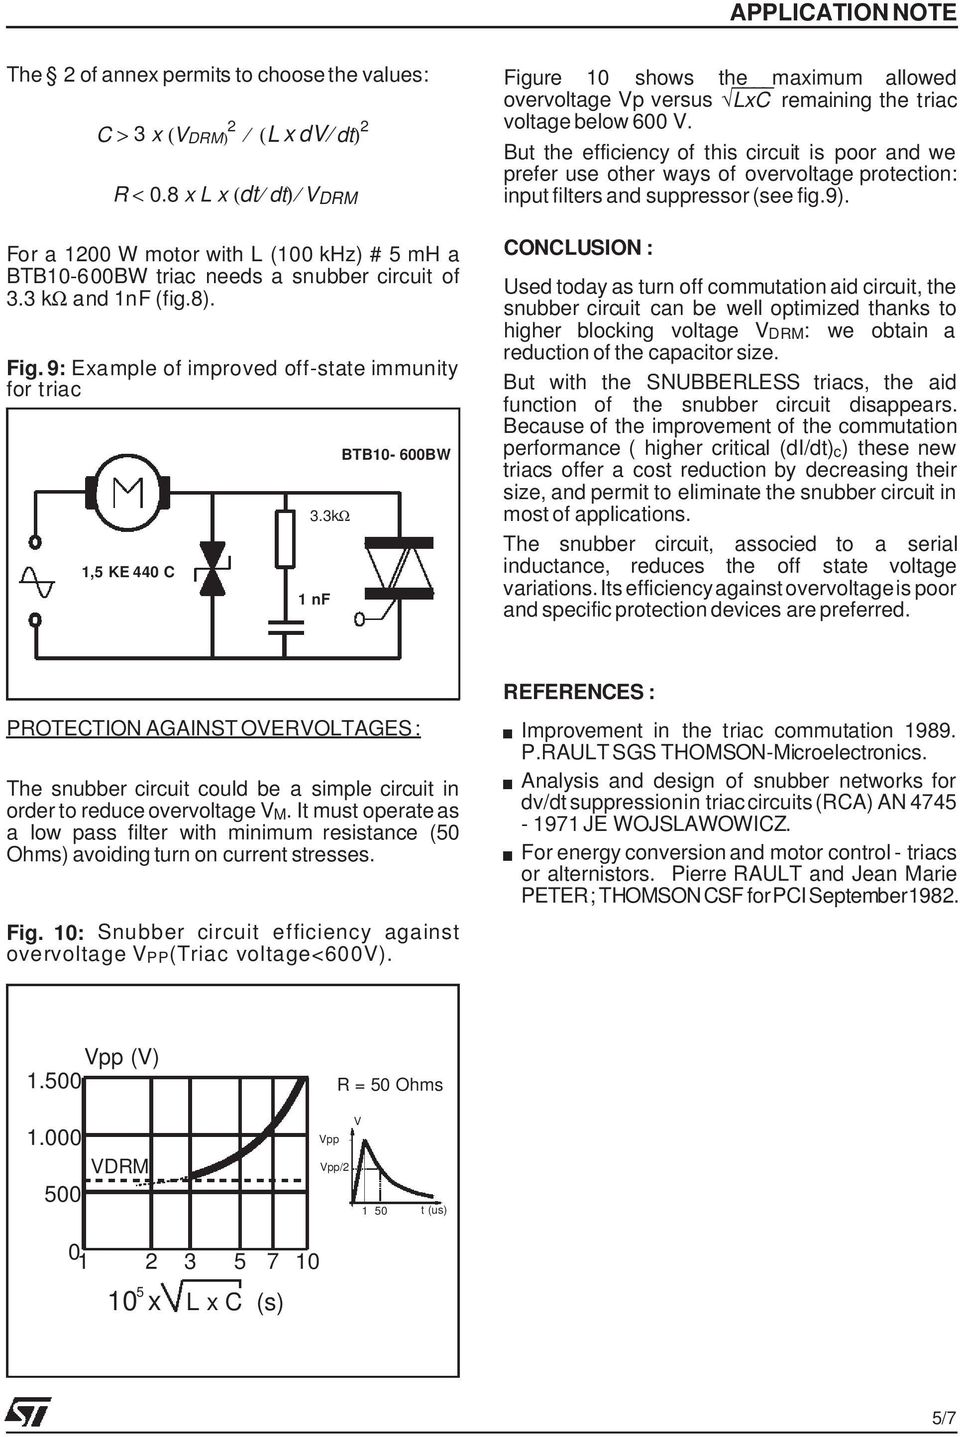 New Triacs Is The Snubber Circuit Necessary Pdf Bta41 600b Datasheet Application Note Electronic Projects 3k 1nf Btb10 600bw Figure 10 Shows Maximum Allowed Overvoltage Vp Versus Lxc Remaining